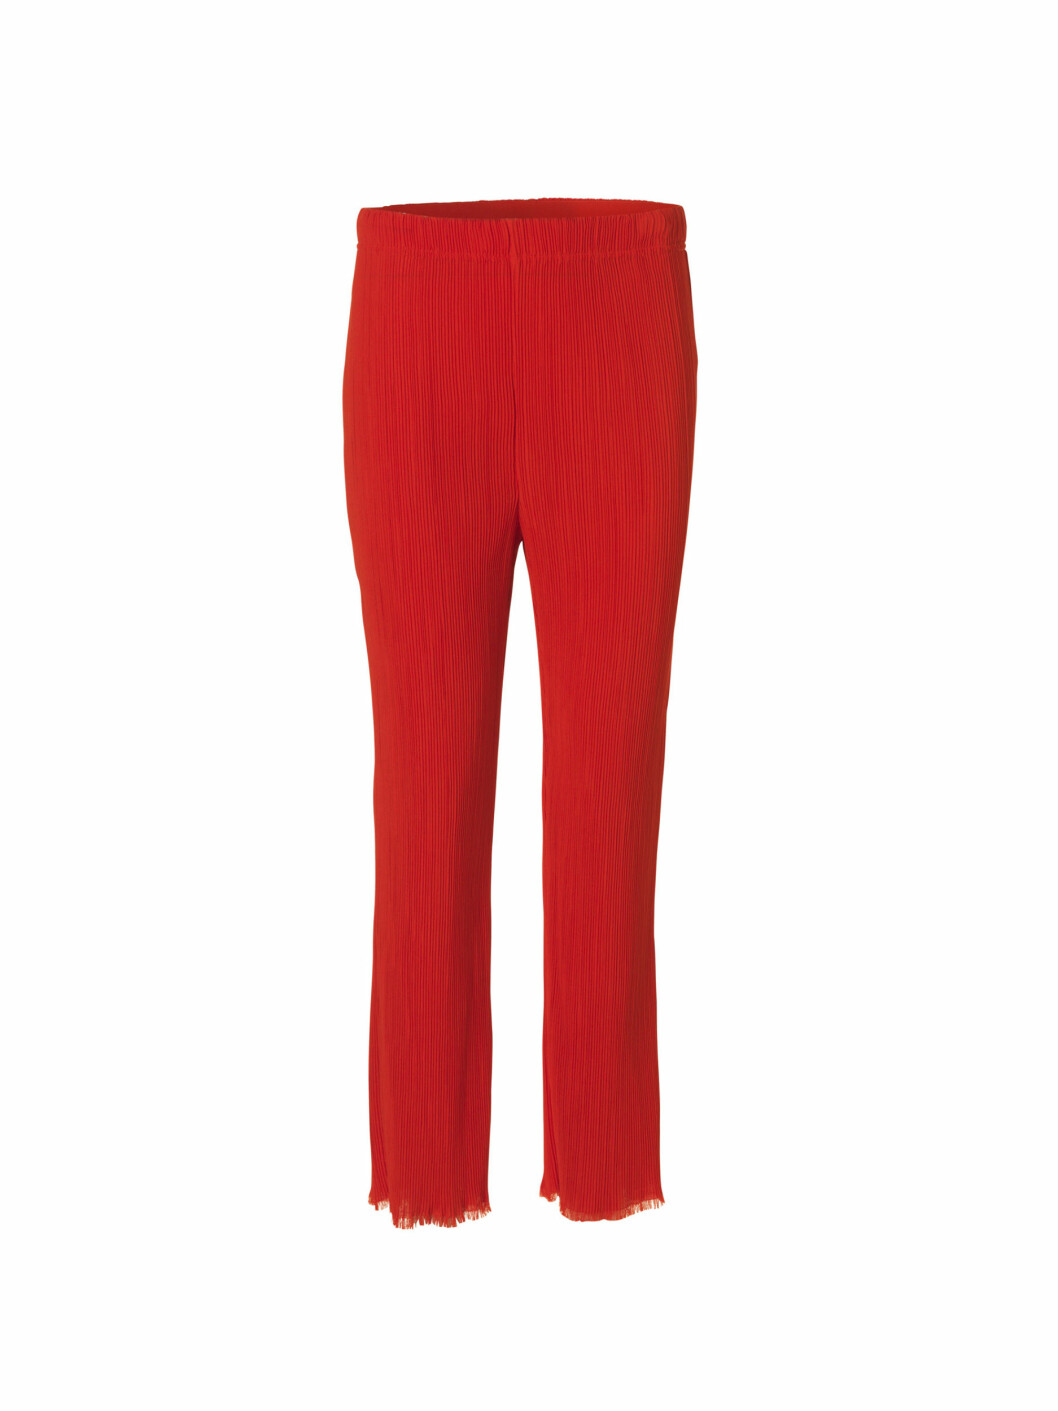 <strong>Bukse fra By Malene Birger | kr 2500 | http:</strong>//www.bymalenebirger.com/no/trousers/ralano-trousers-Q62303002.html?cgid=Wc1229062&dwvar_Q62303002_color=57P